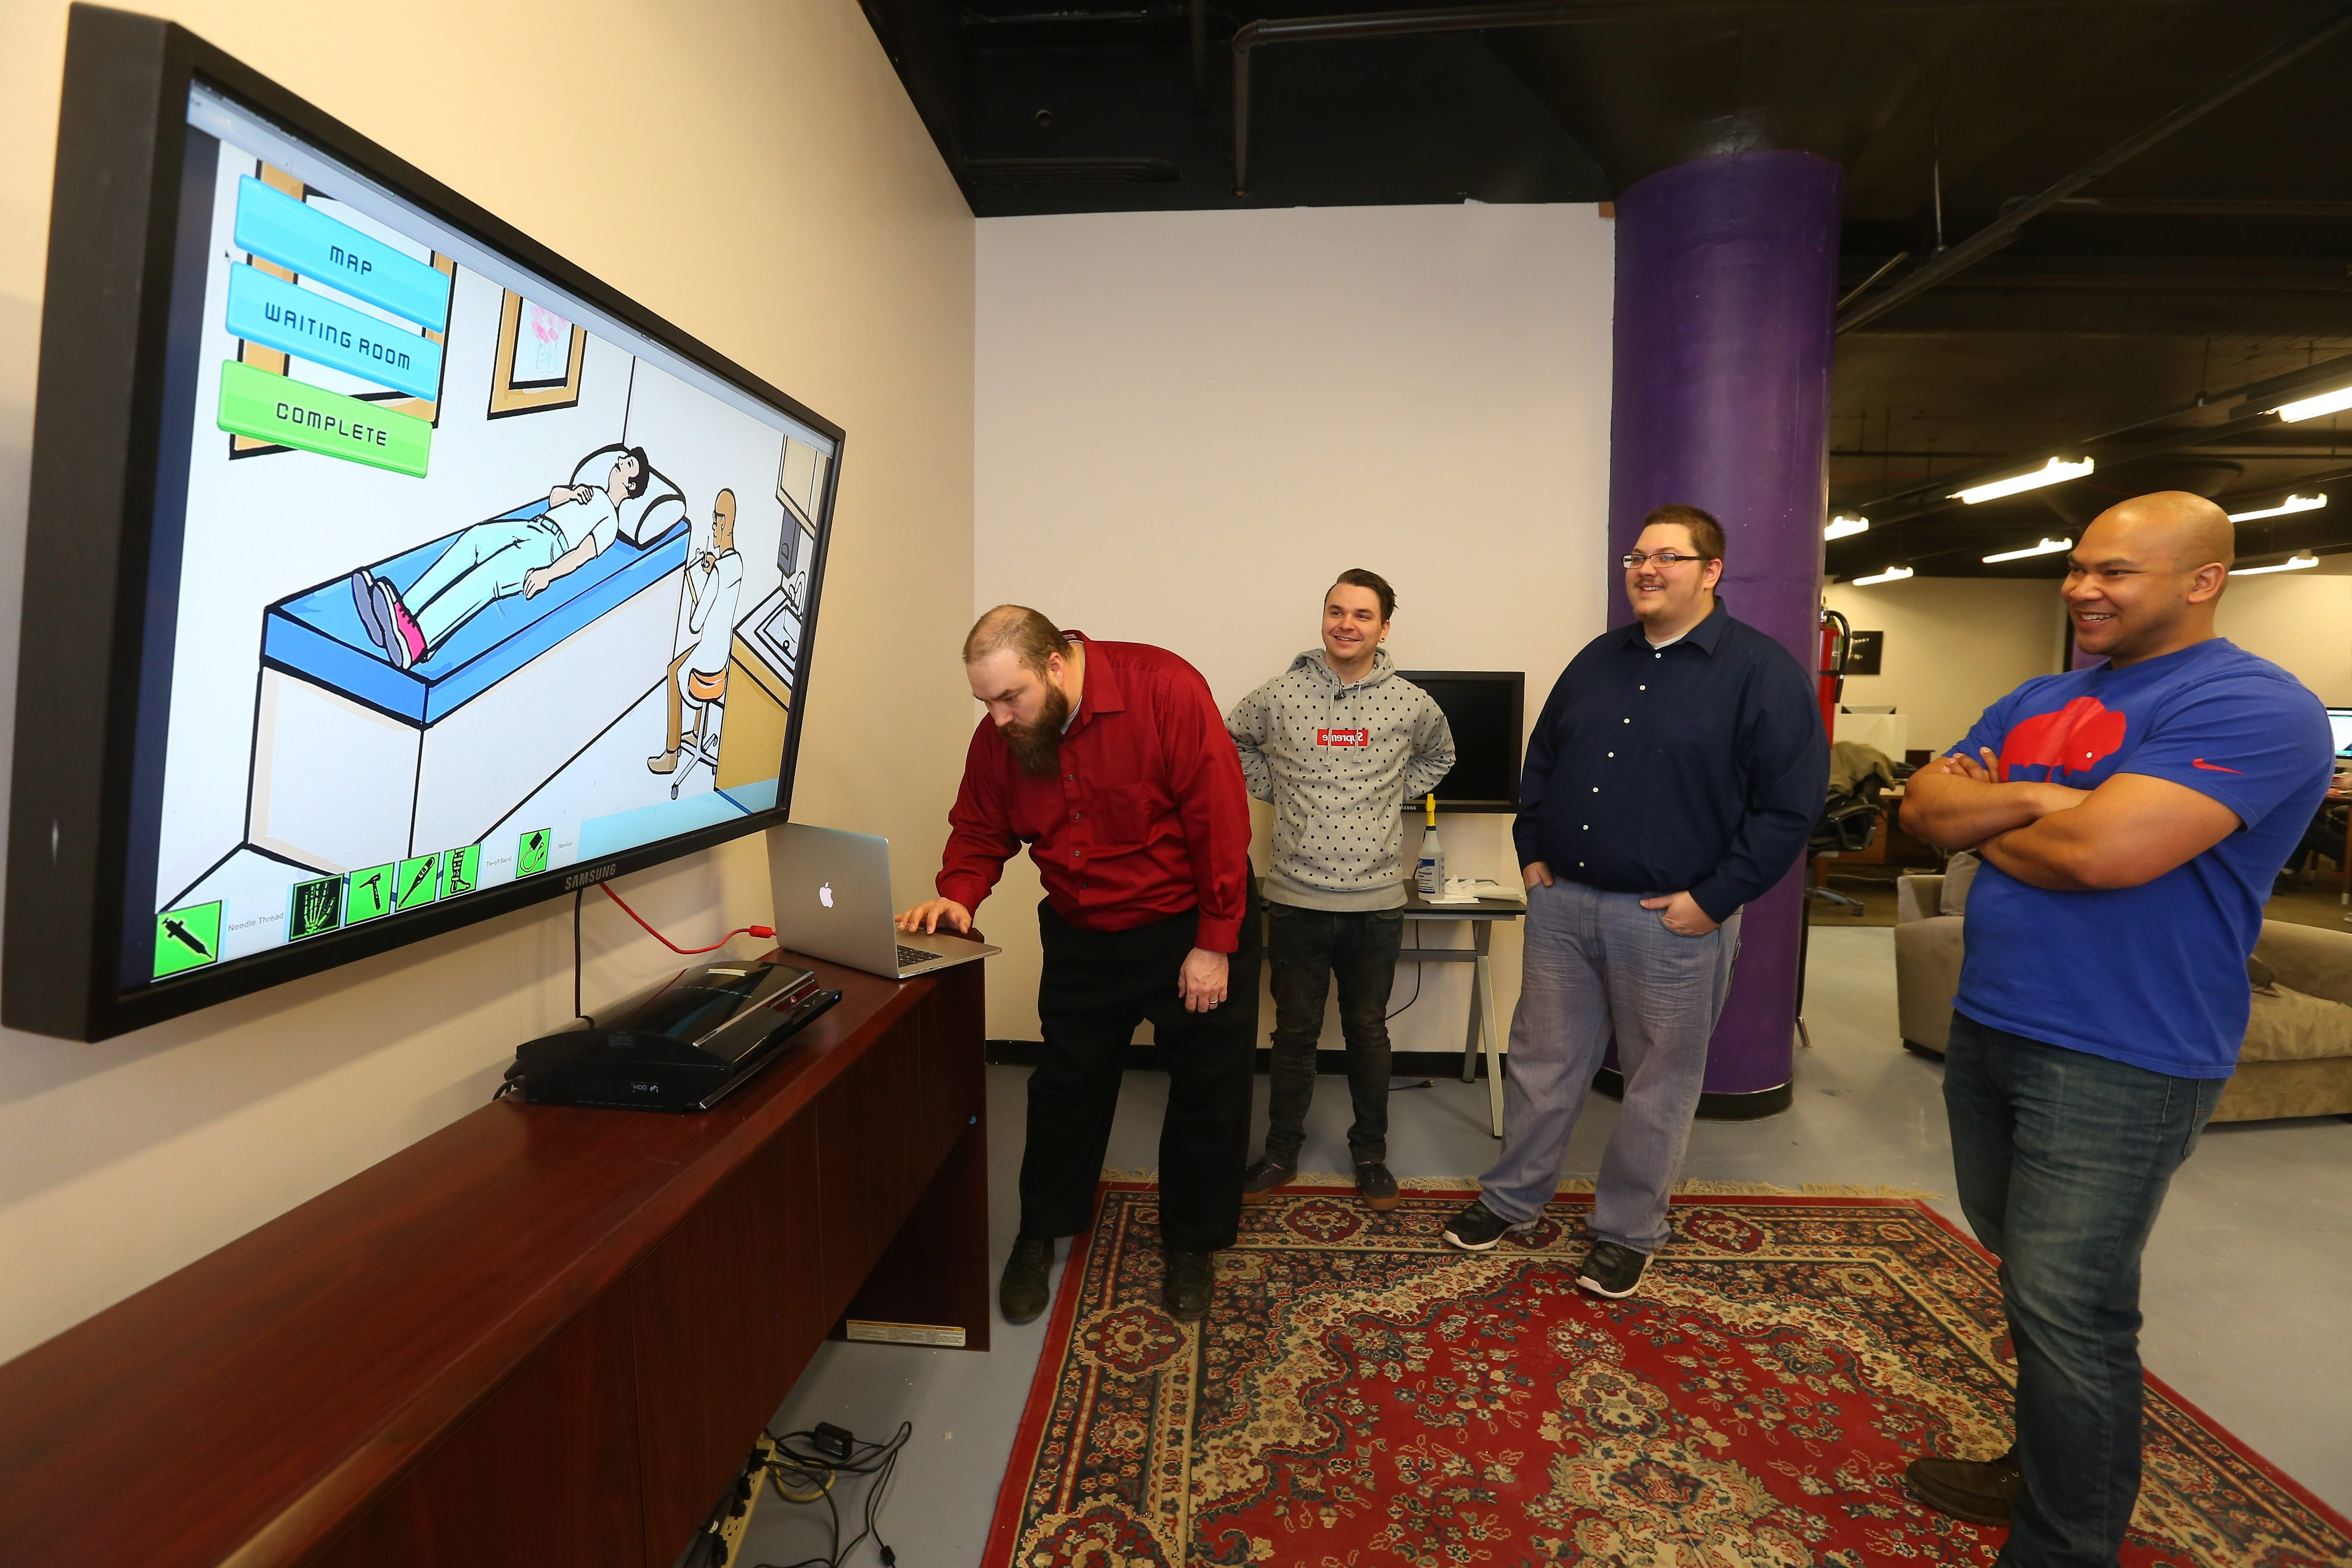 """Bill Stewart, left, types into his laptop as Eric Keller, center, and Dan Griggs  watches. Stewart and Griggs """"Queen City Careers"""" is the front-runner in Buffalo's computer game competition."""